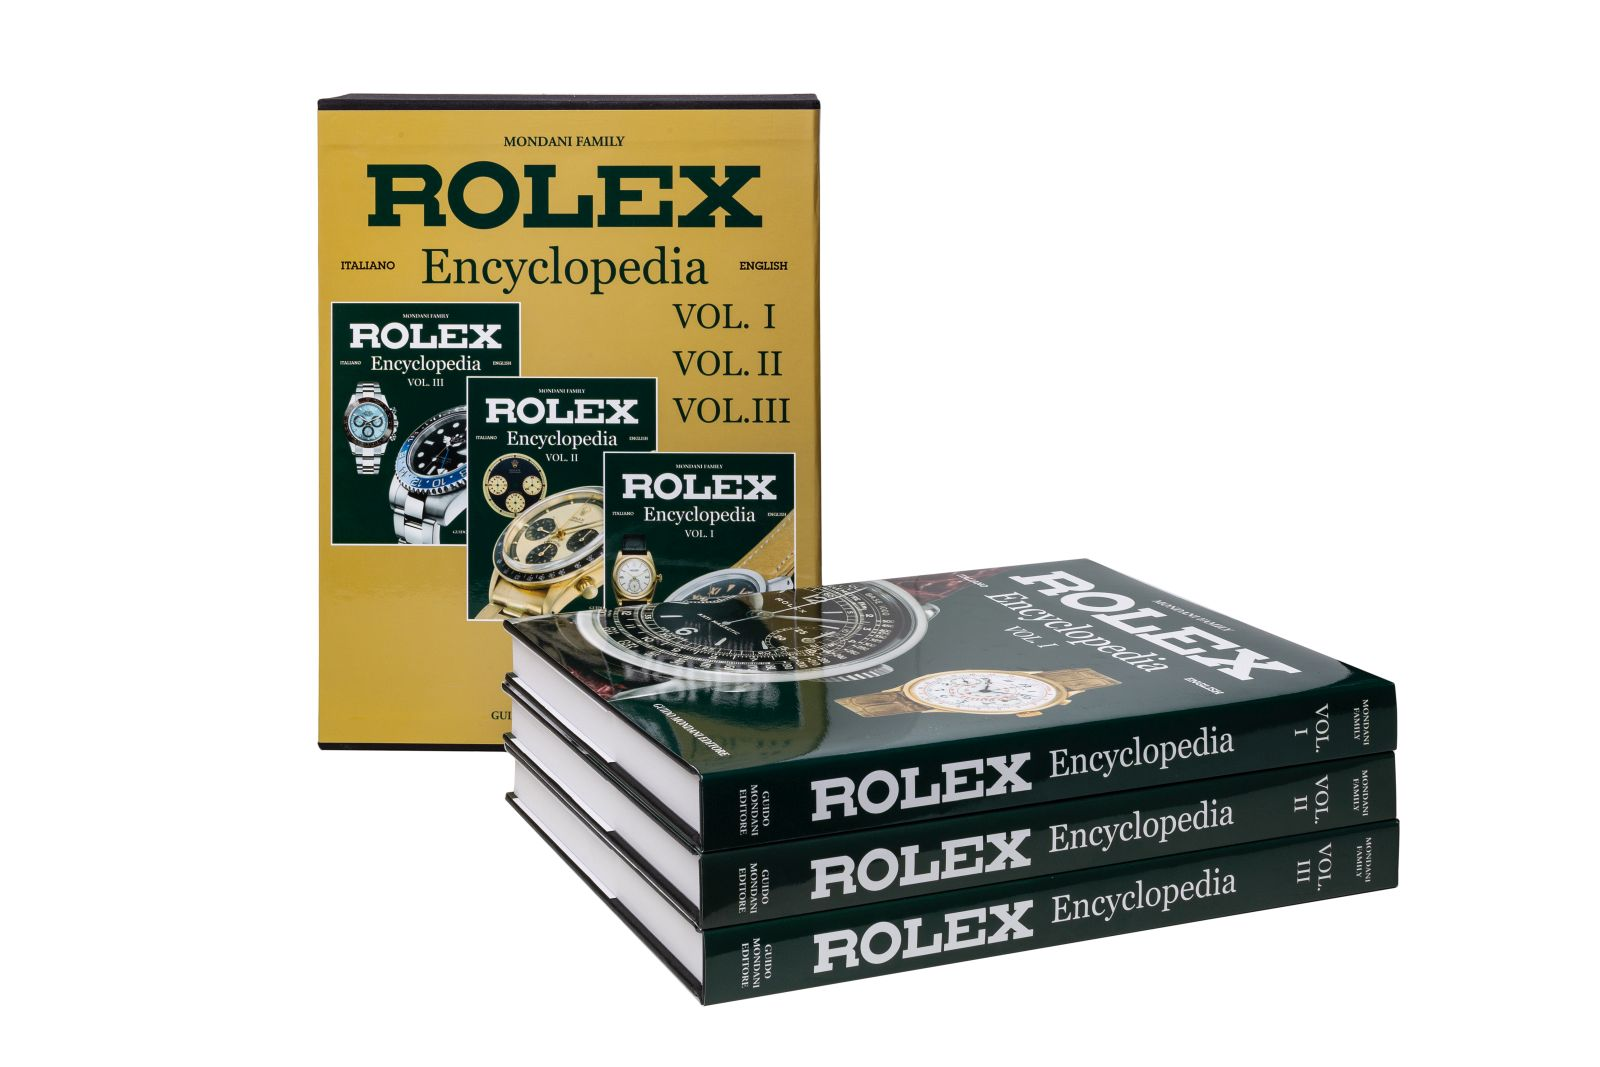 #3 Rolex Book Encyclopedia Image